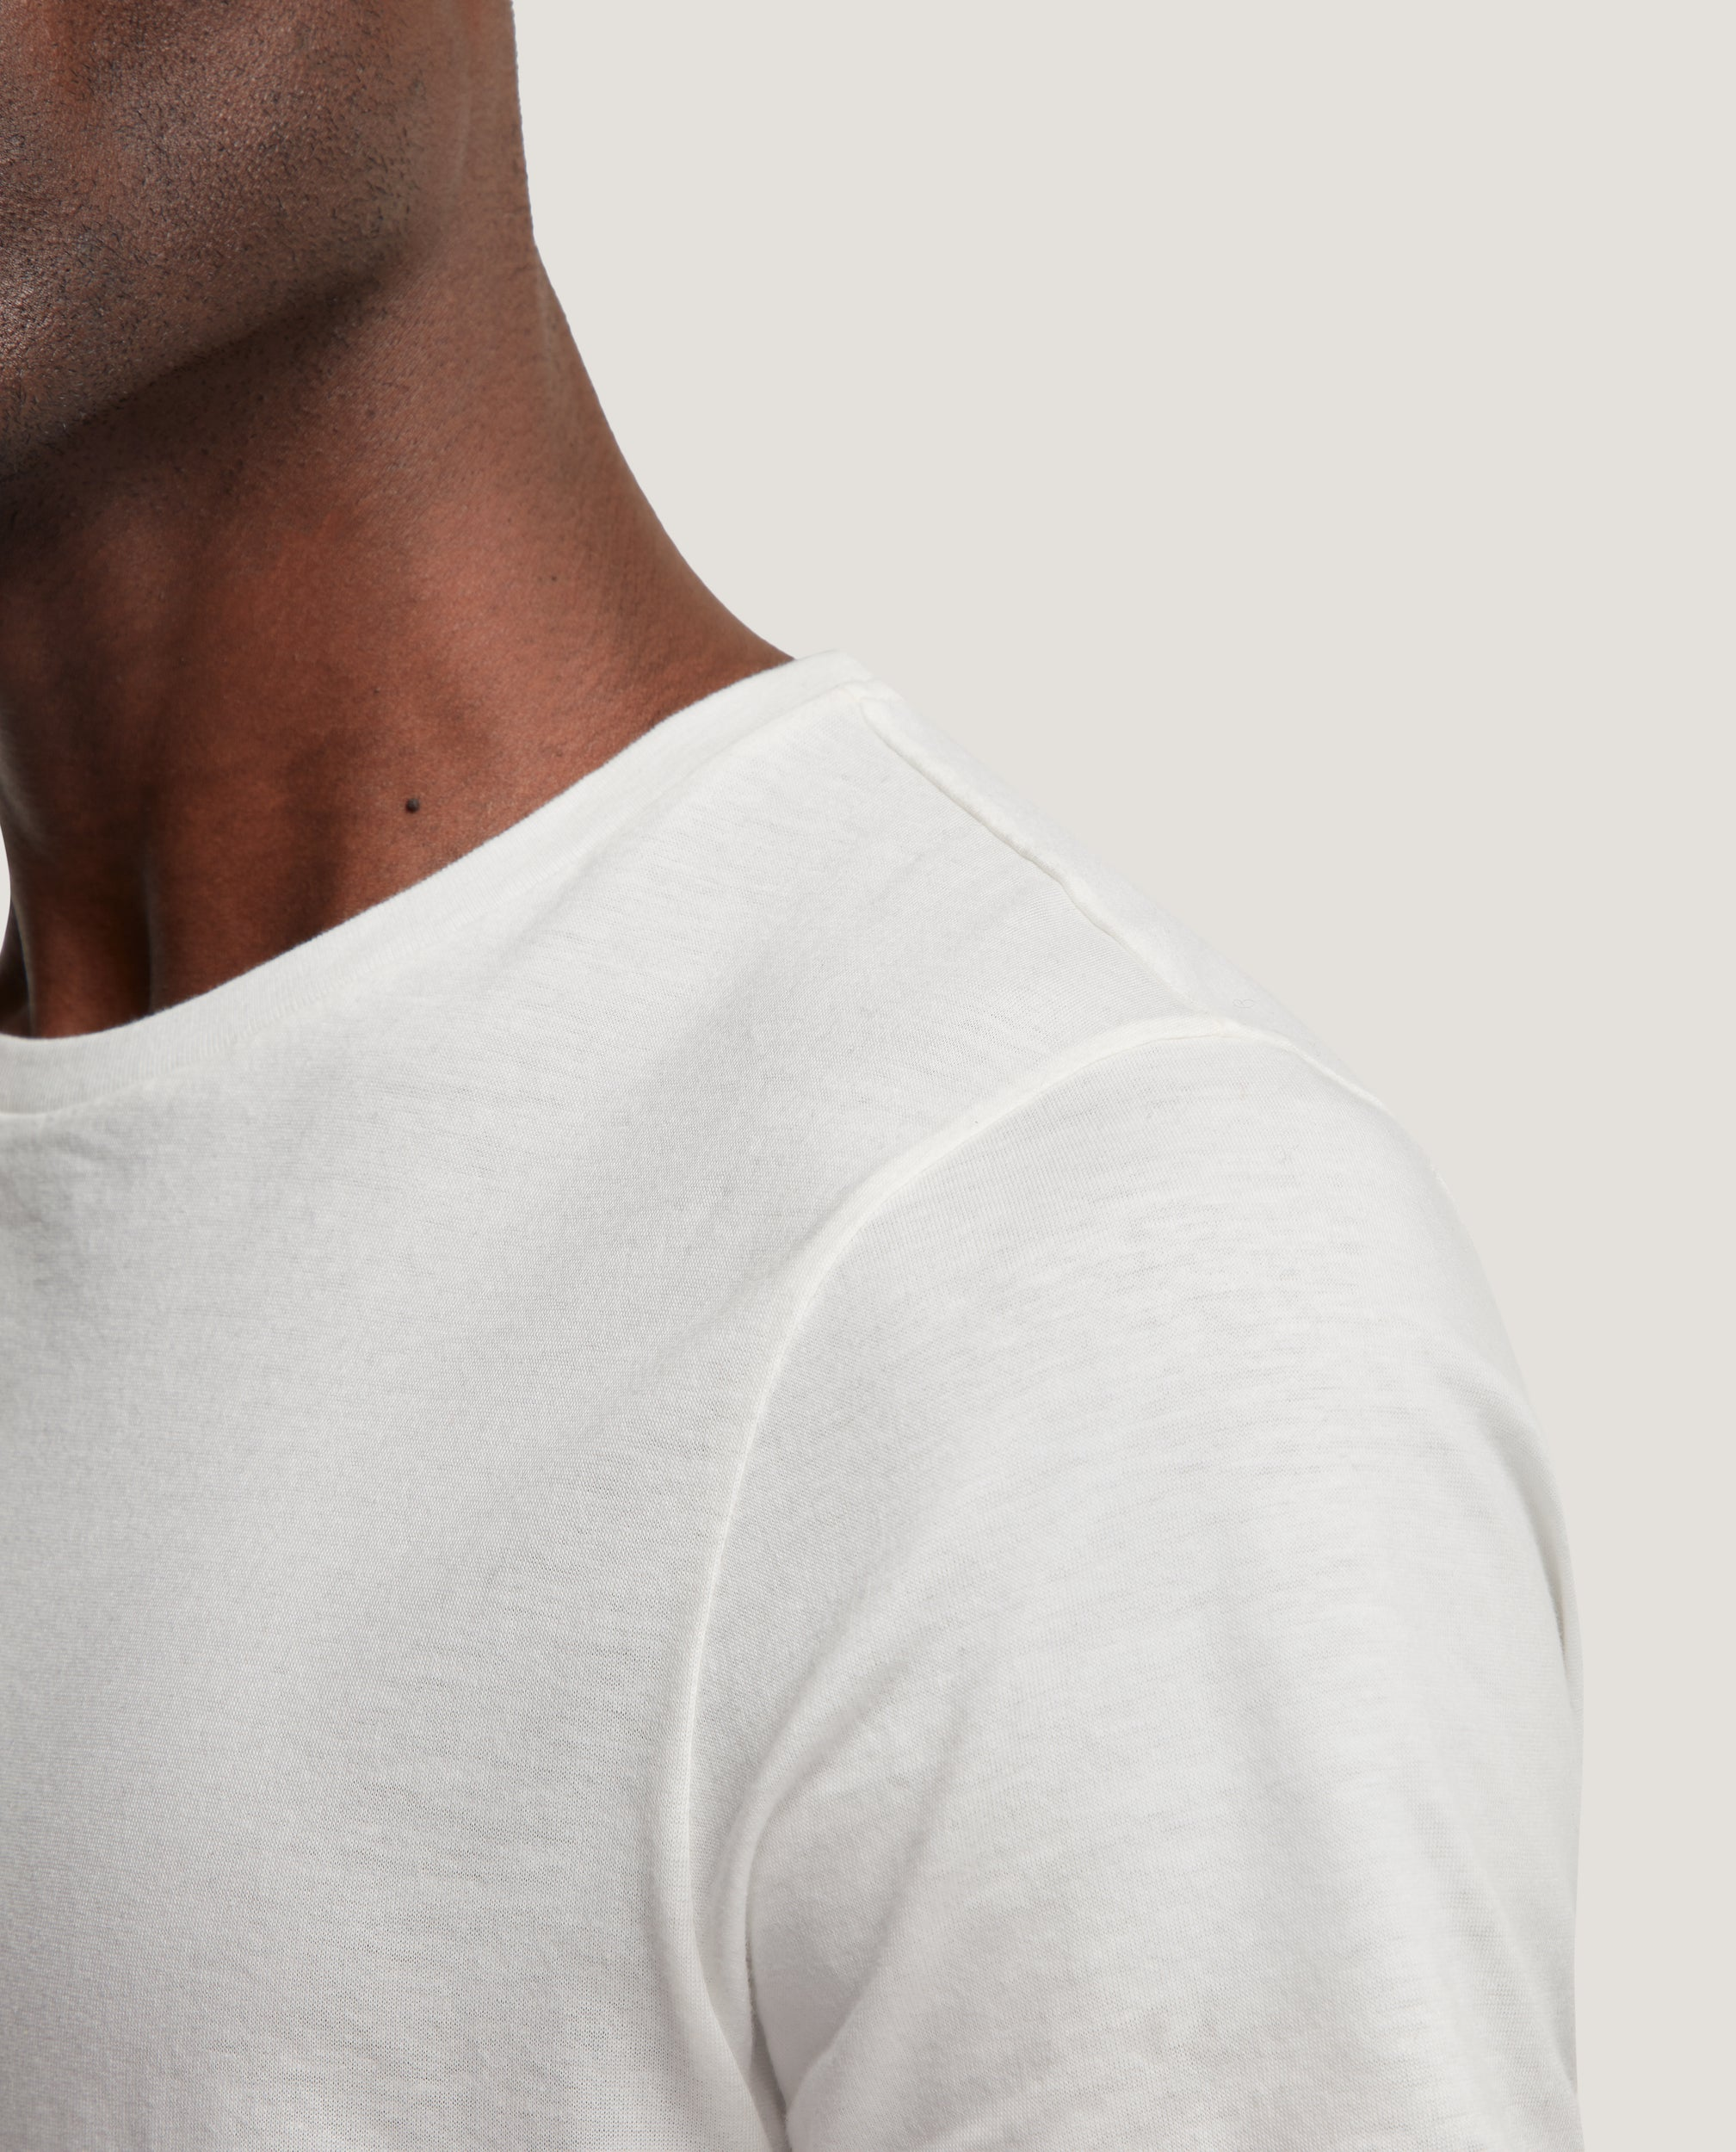 LOTHAR T-shirt | Cotton | Off White